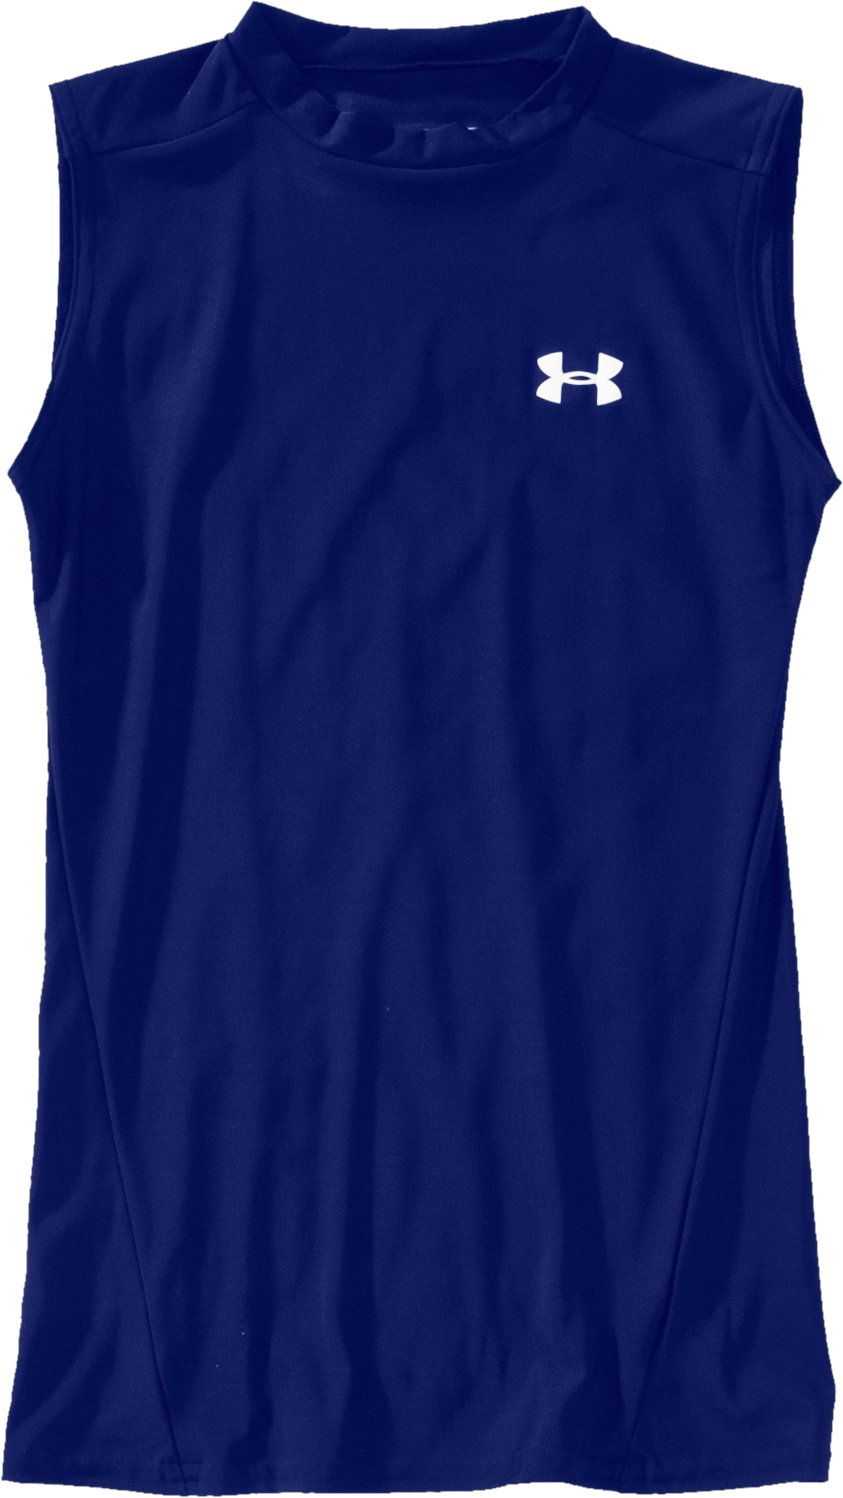 Boys' Sleeveless HeatGear® T-Shirt II, Royal, Laydown